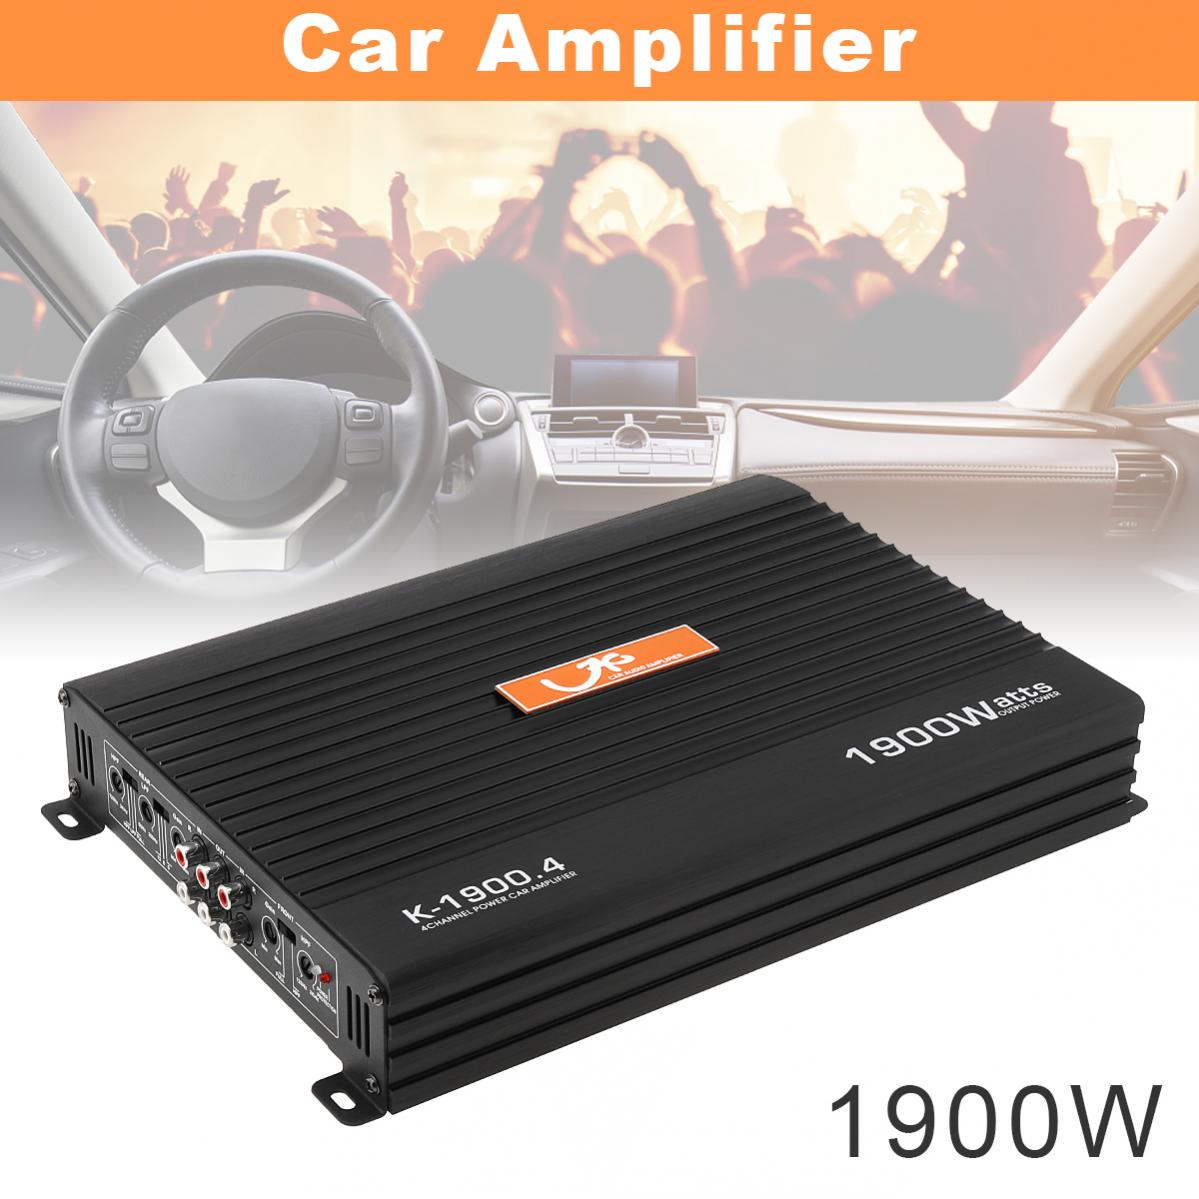 1900W Aluminum Alloy High Power Car Amplifiers 4 Channel Mini HiFi Stereo Audio Class AB Amp Bass For Speaker